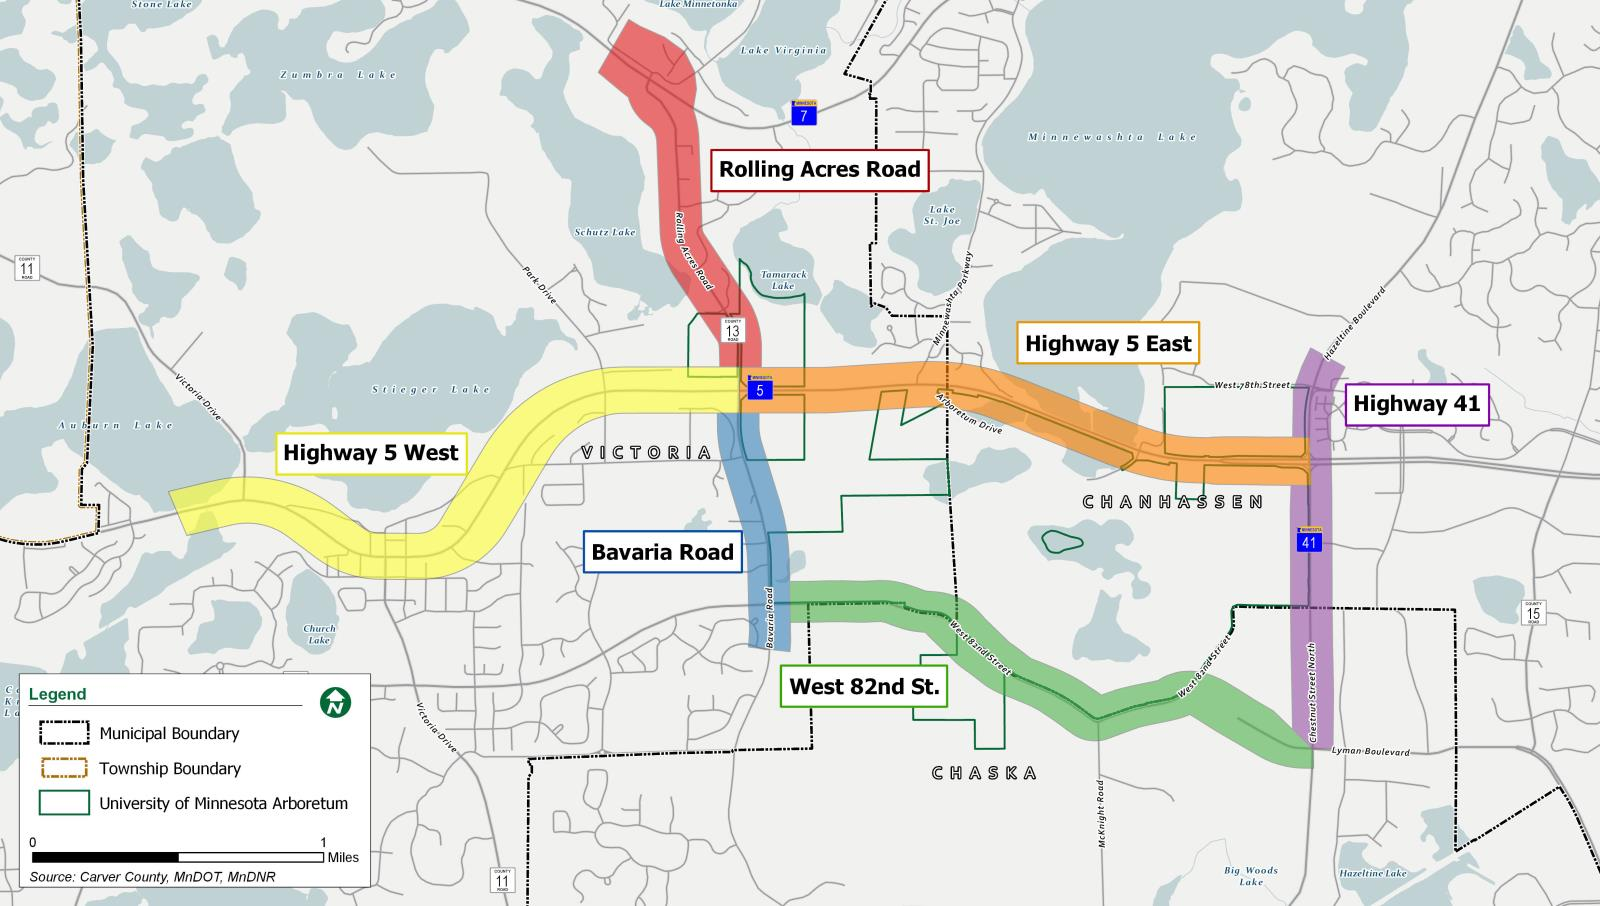 map of arboretum transporation plan projects